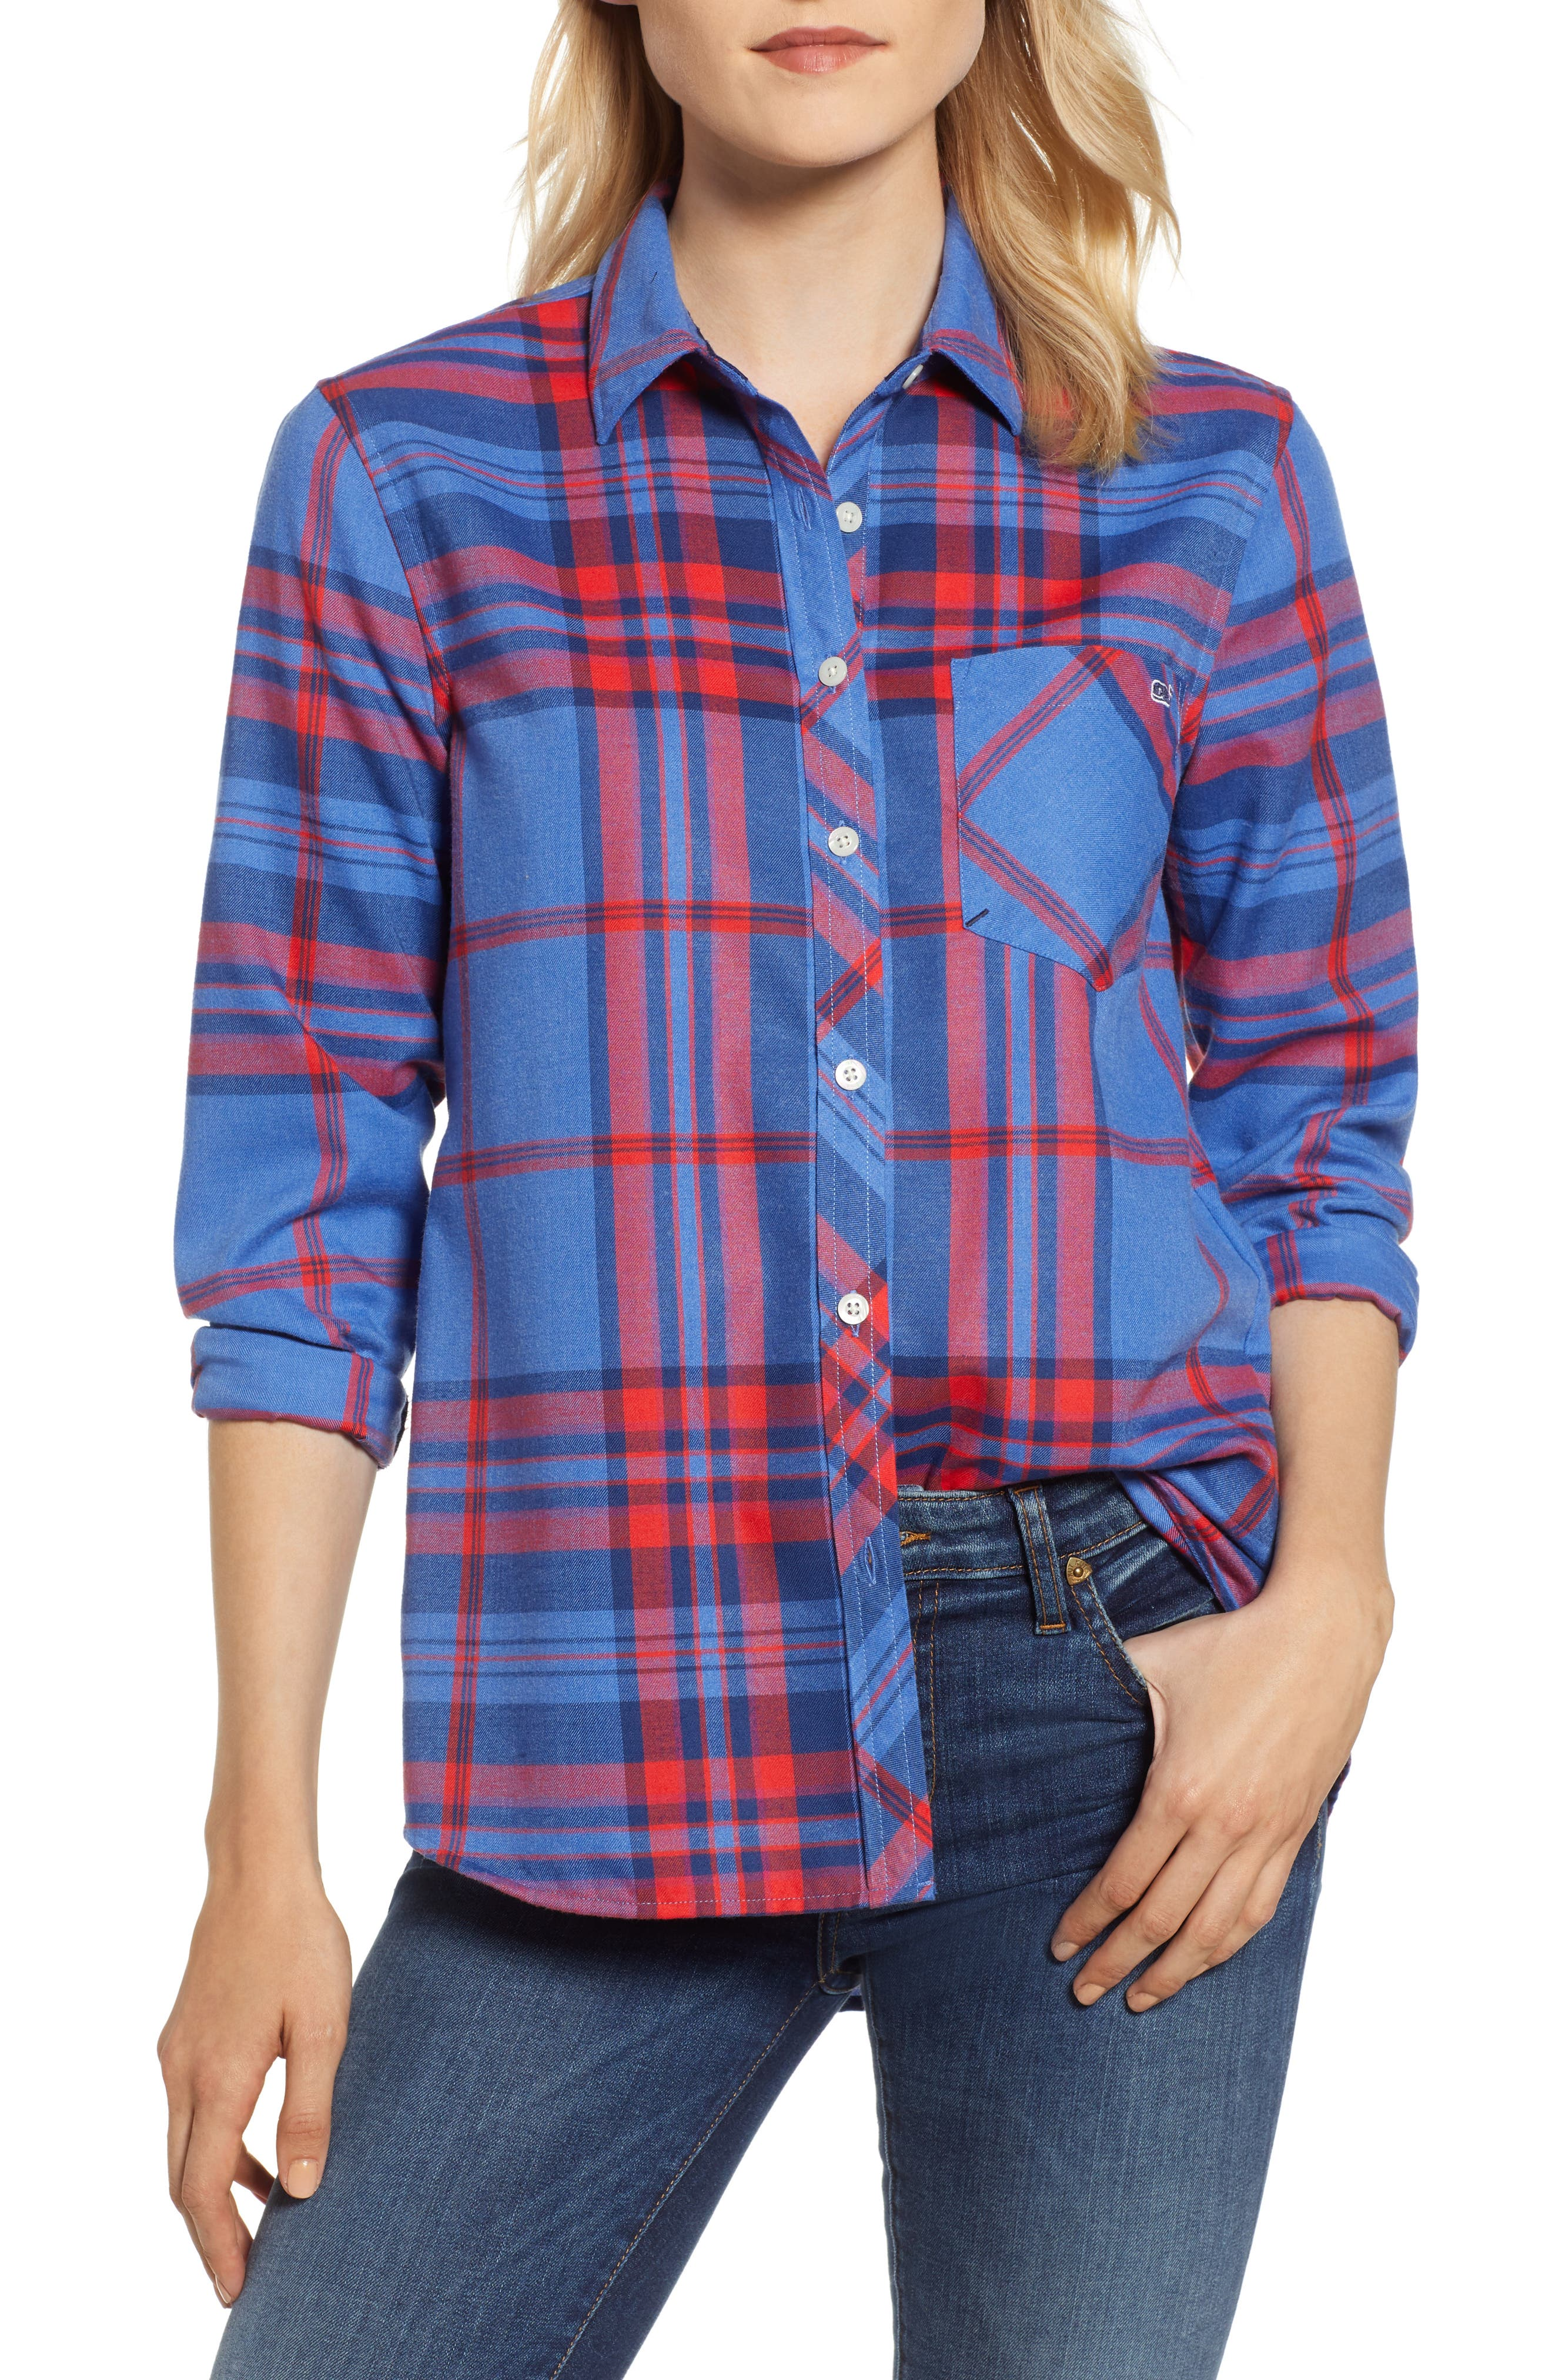 Northern Plaid Performance Flannel Shirt,                         Main,                         color, DAZZLING BLUE